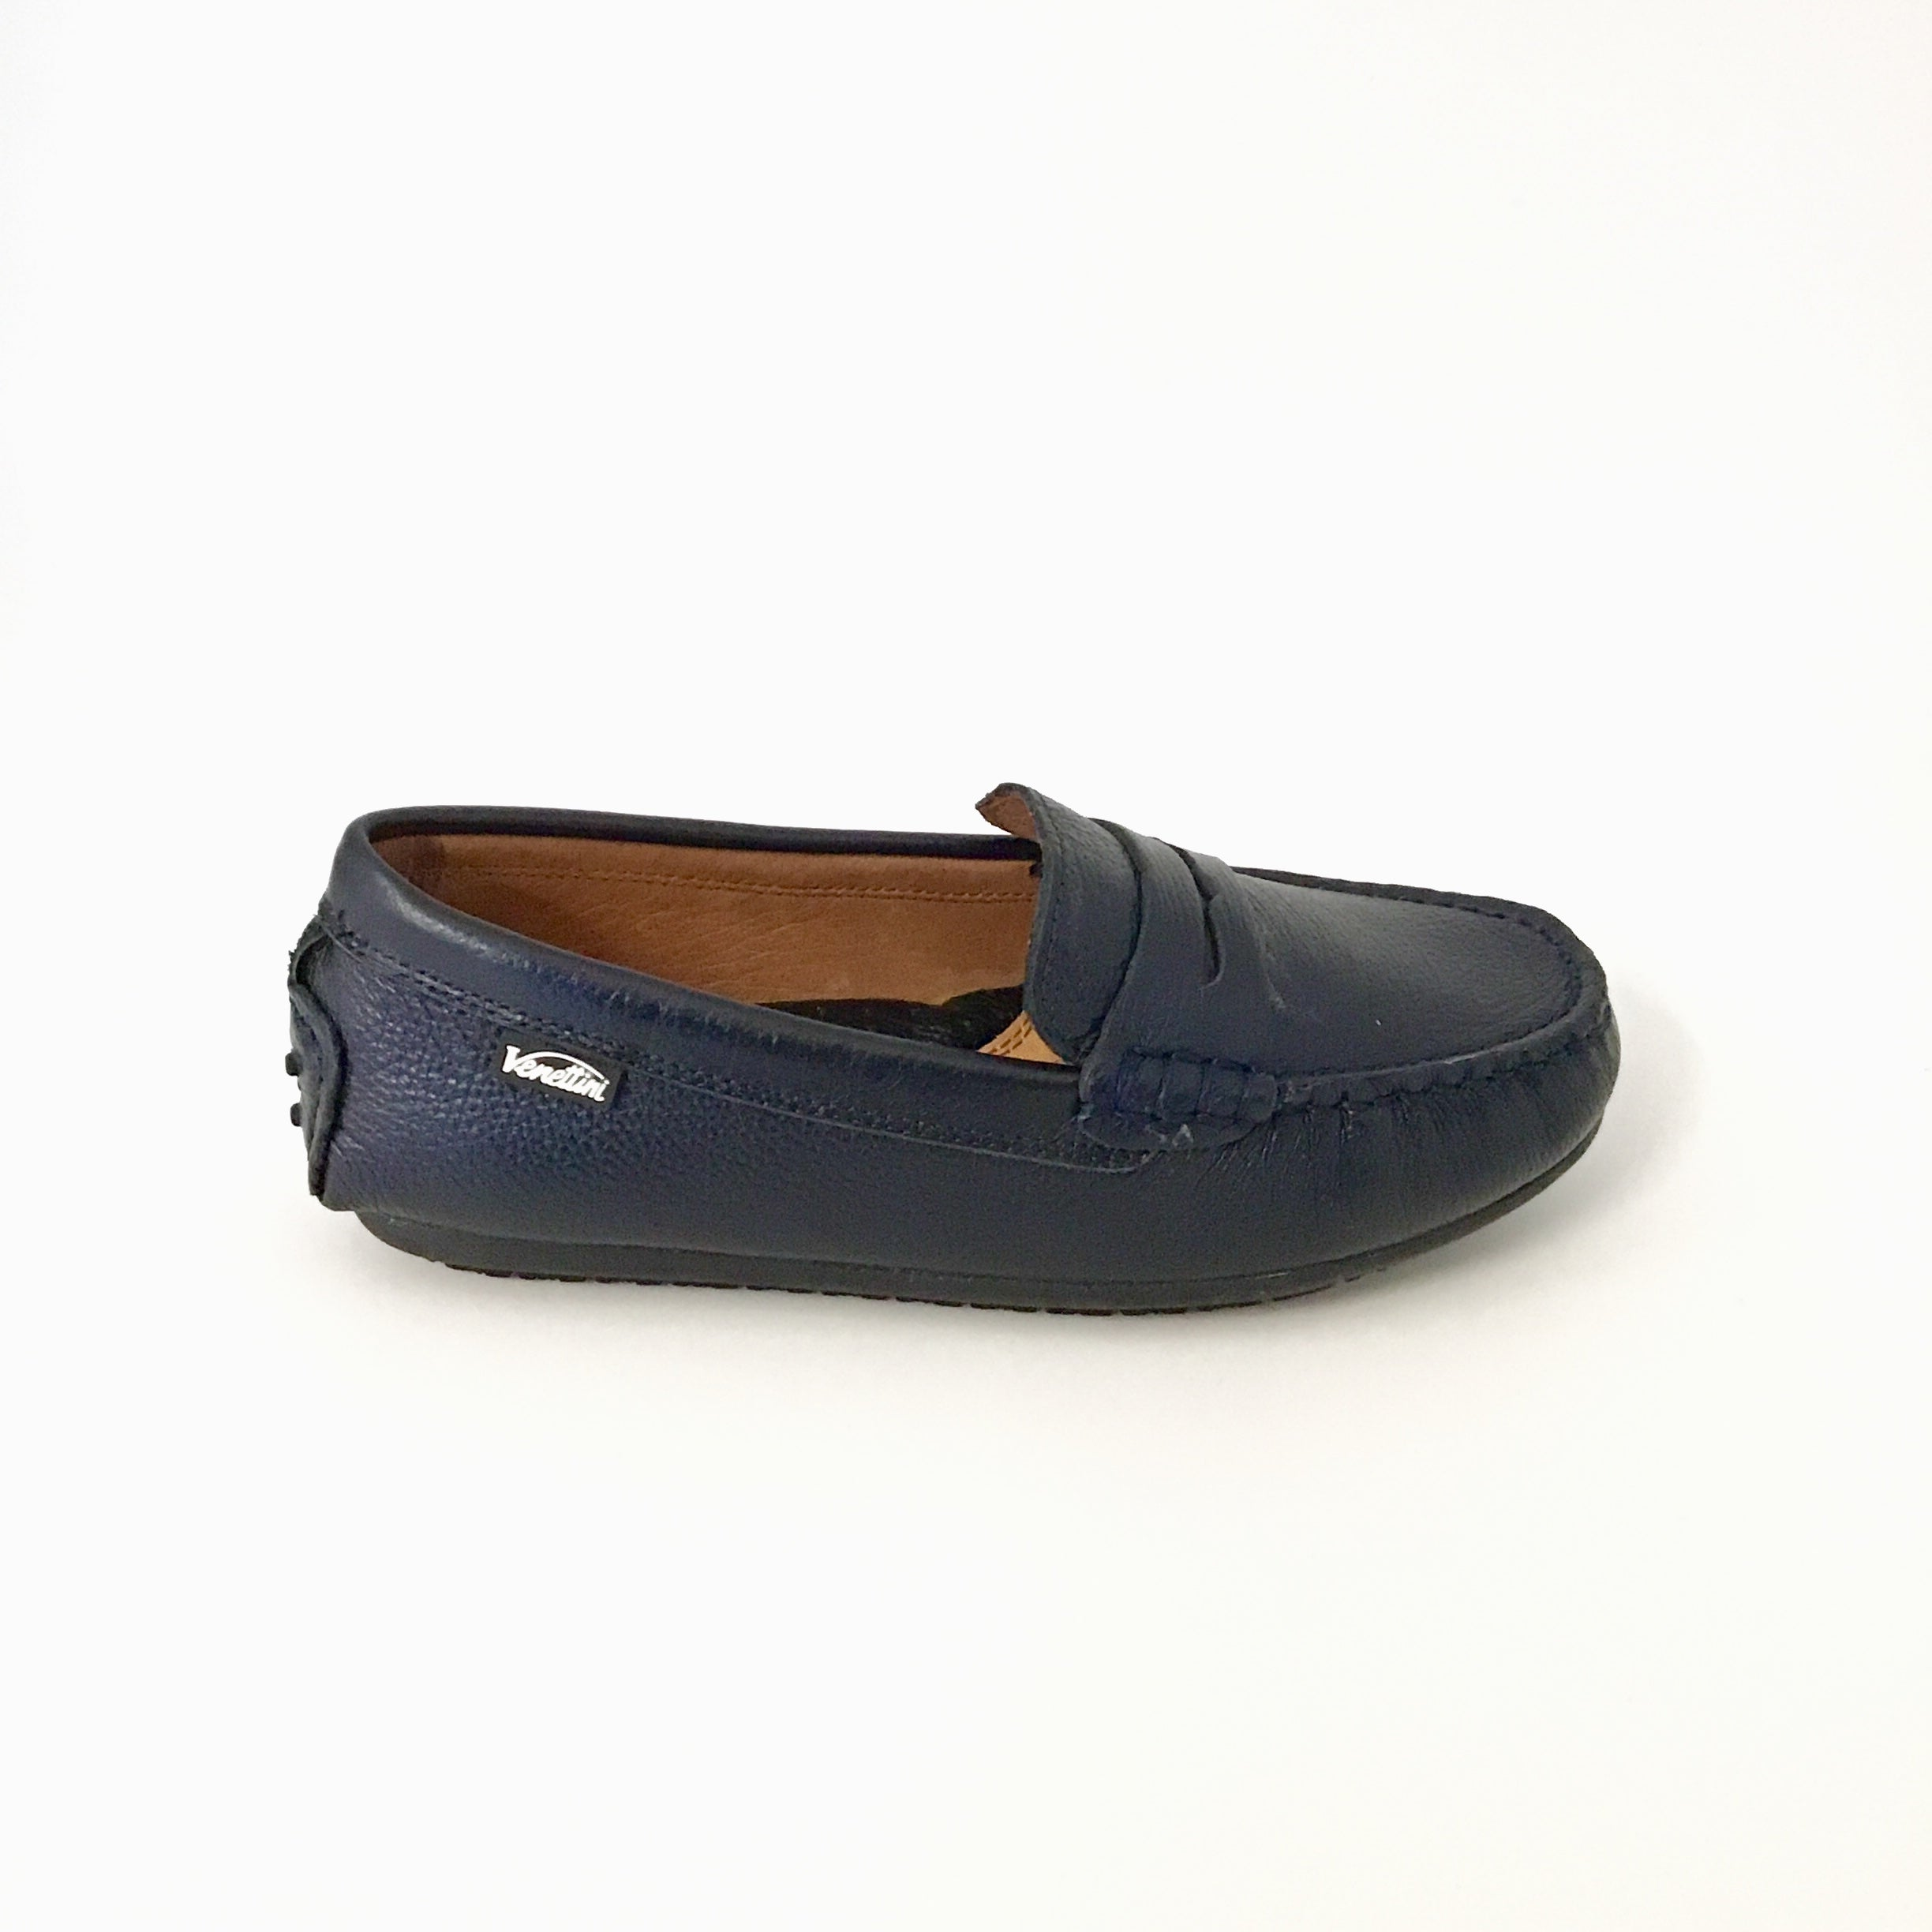 Navy Textured Penny Loafer